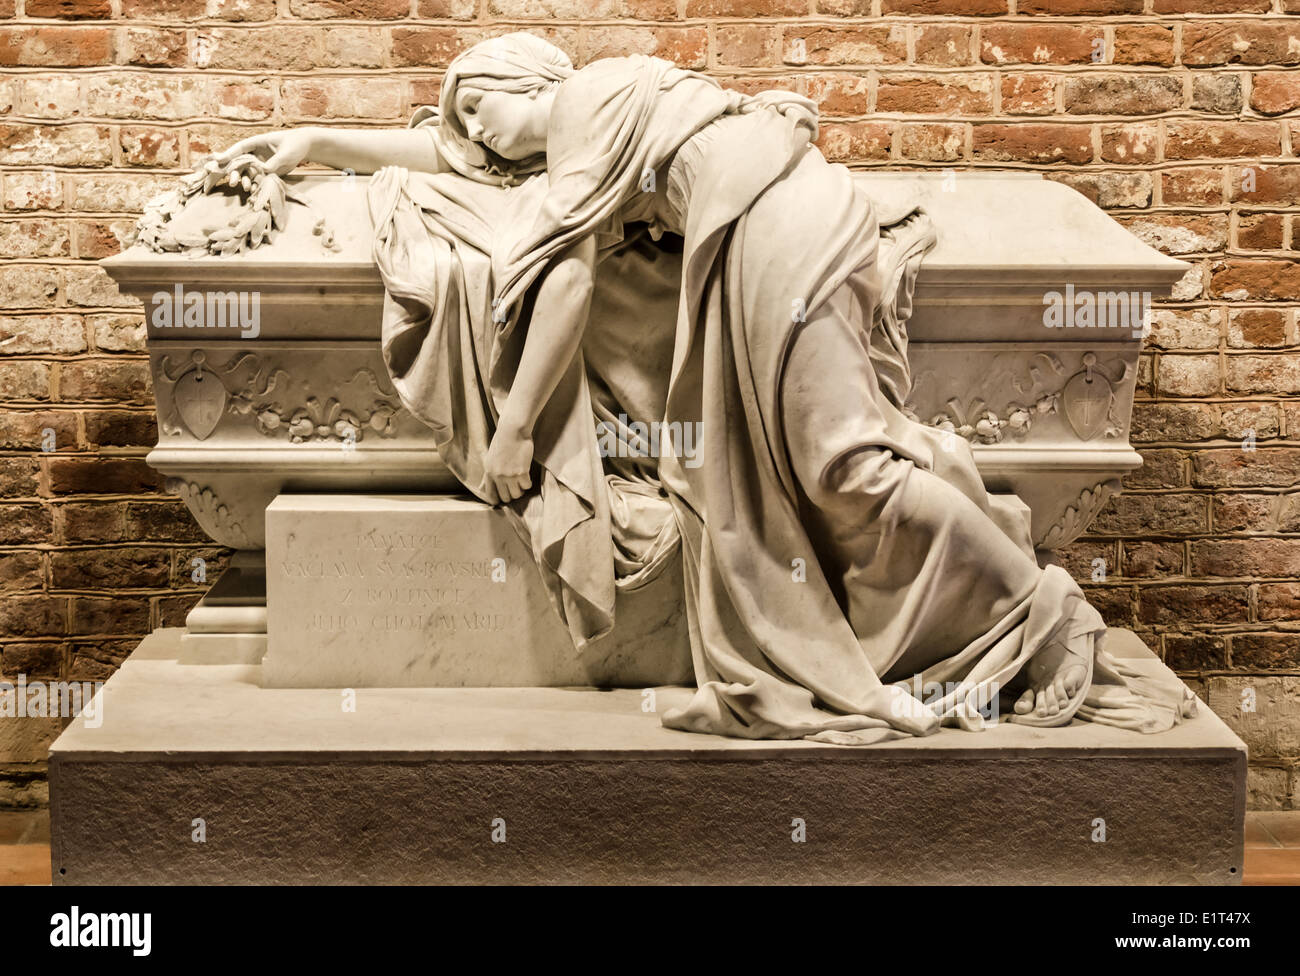 Sarcophagus of Vaclav Svagrovska in Prague (Convent of Saint Agnes of Bohemia) - Stock Image